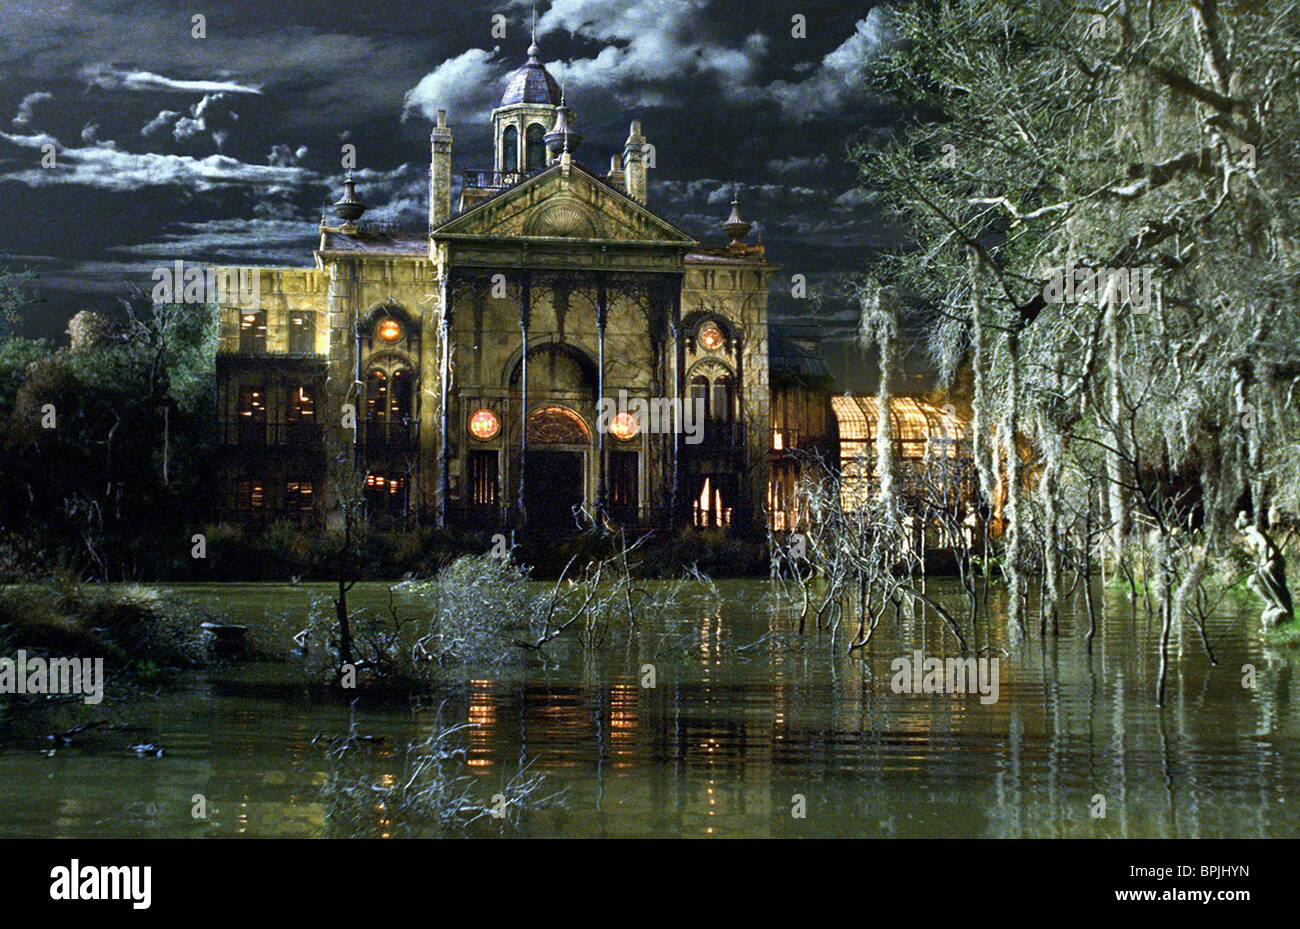 THE MANSION THE HAUNTED MANSION (2003) - Stock Image